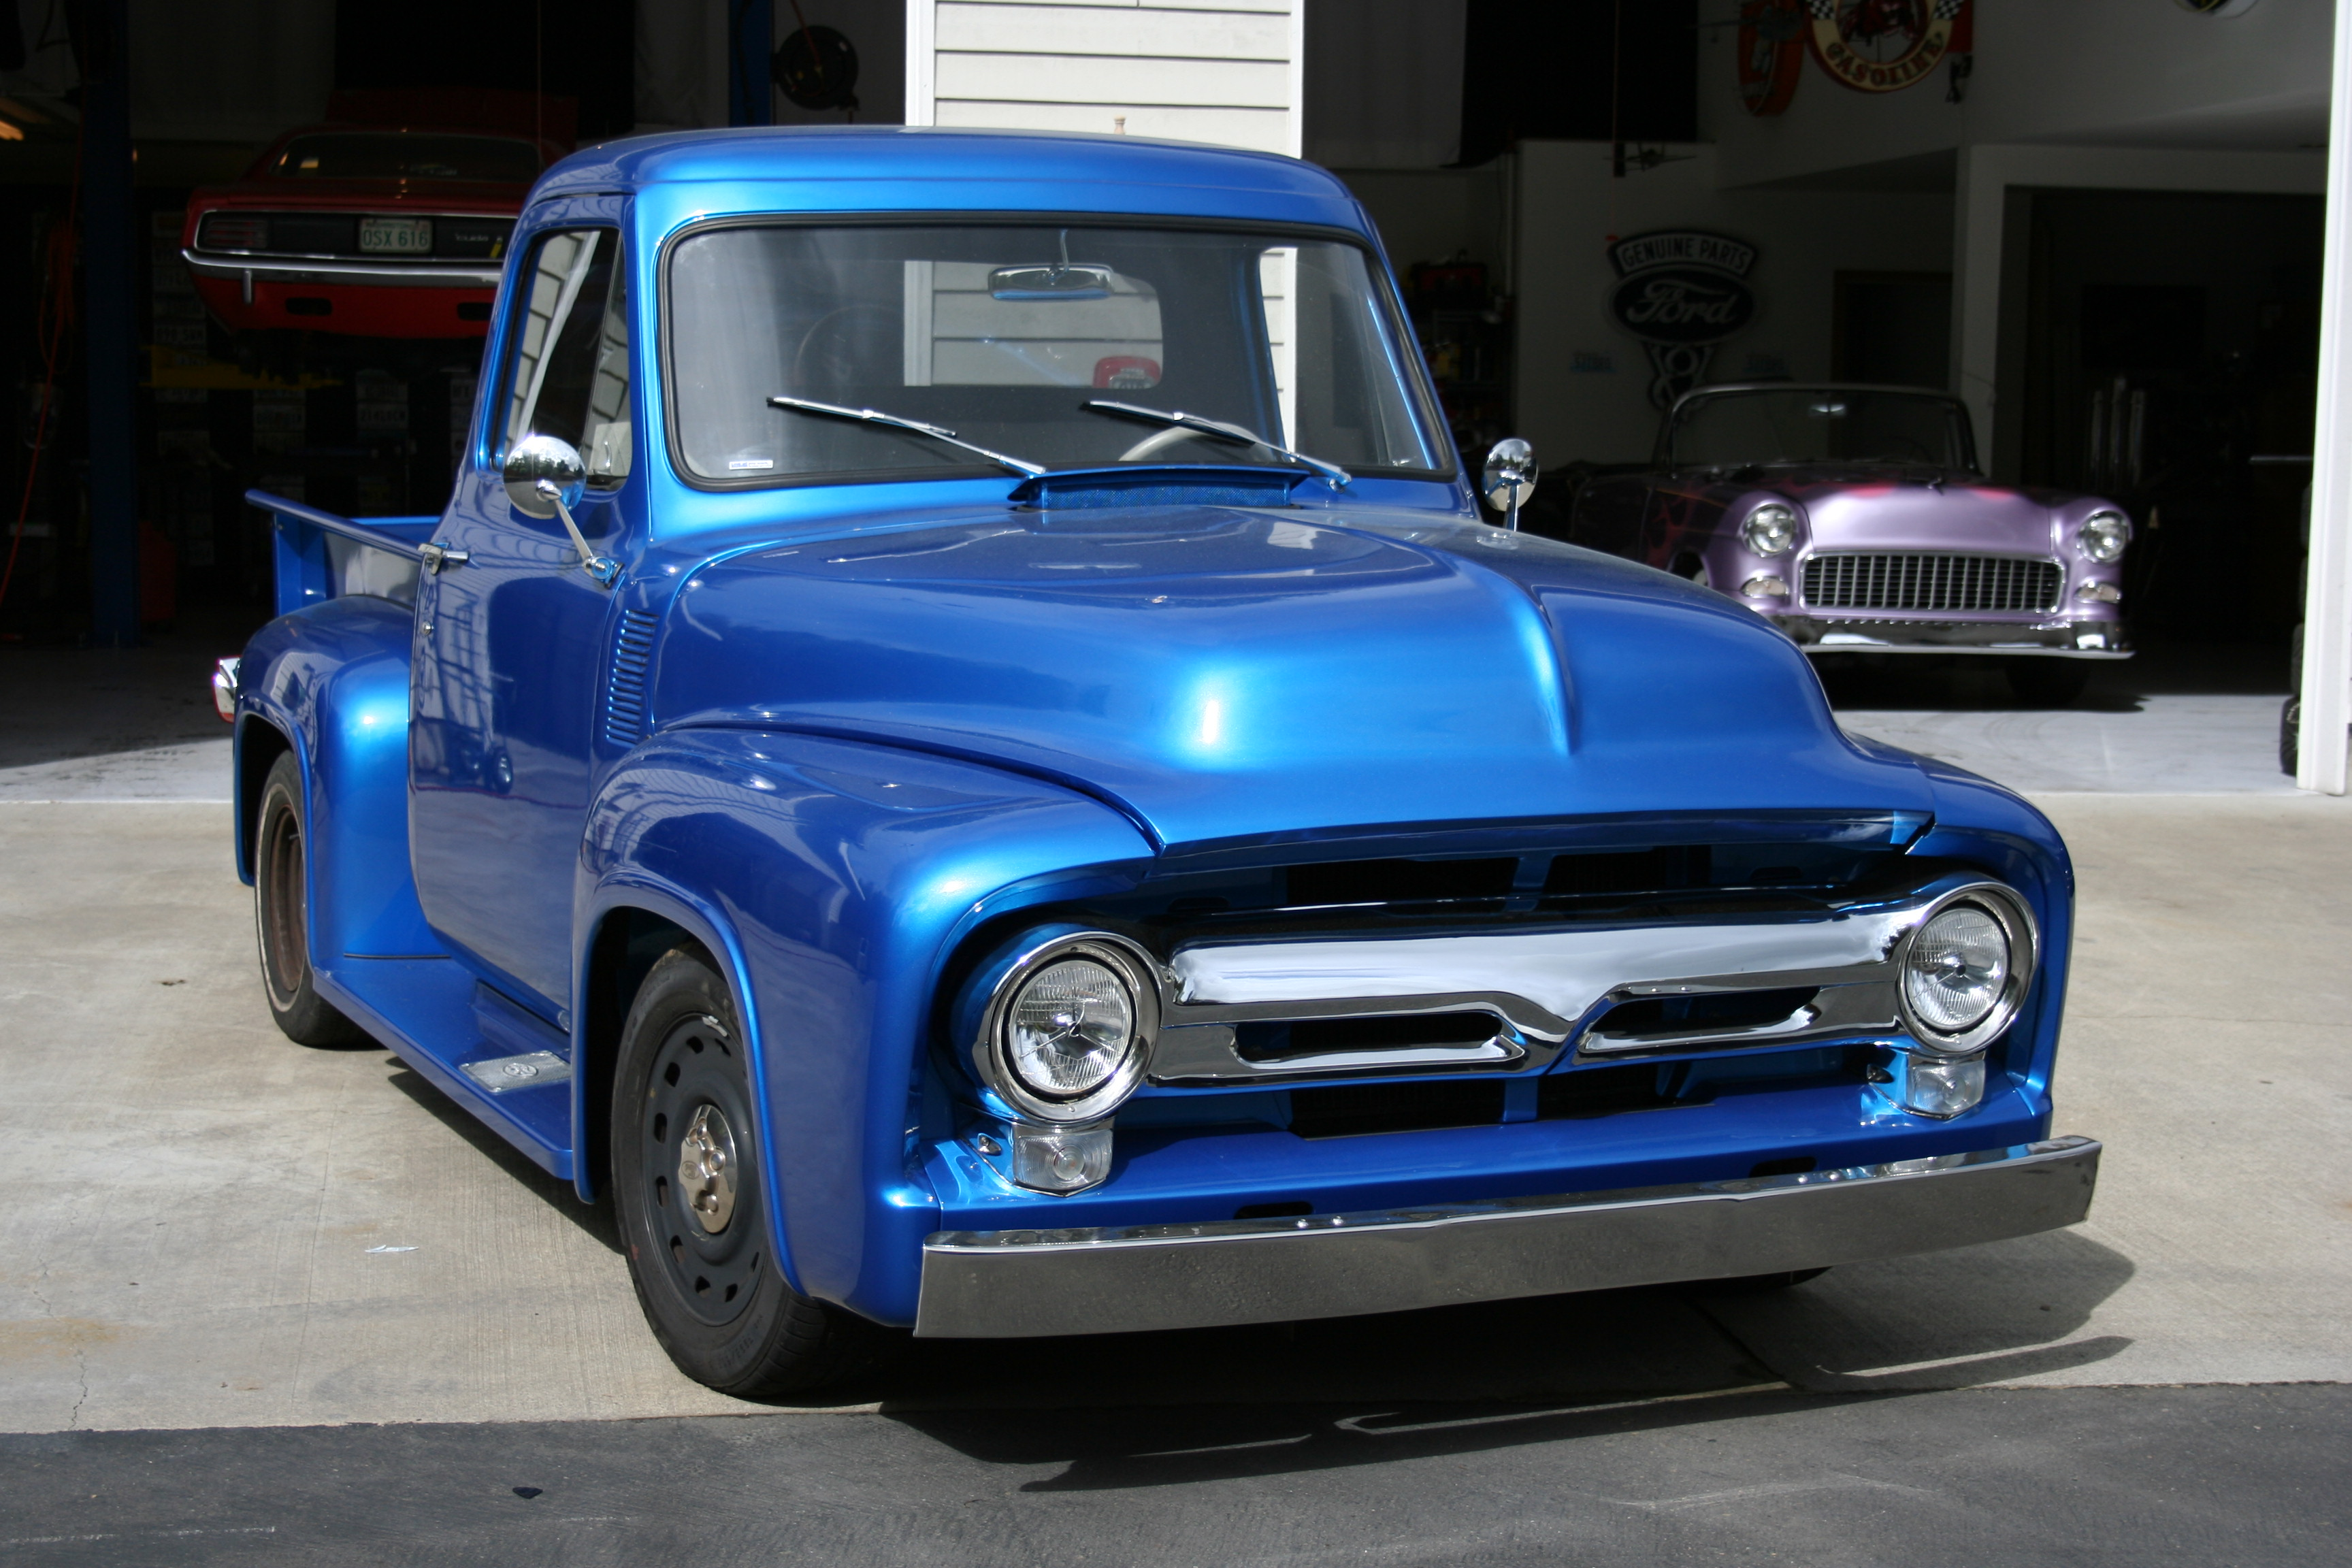 1951 Chevy Pickup Truck On Alternator Wiring For 1969 Mercury Cougar